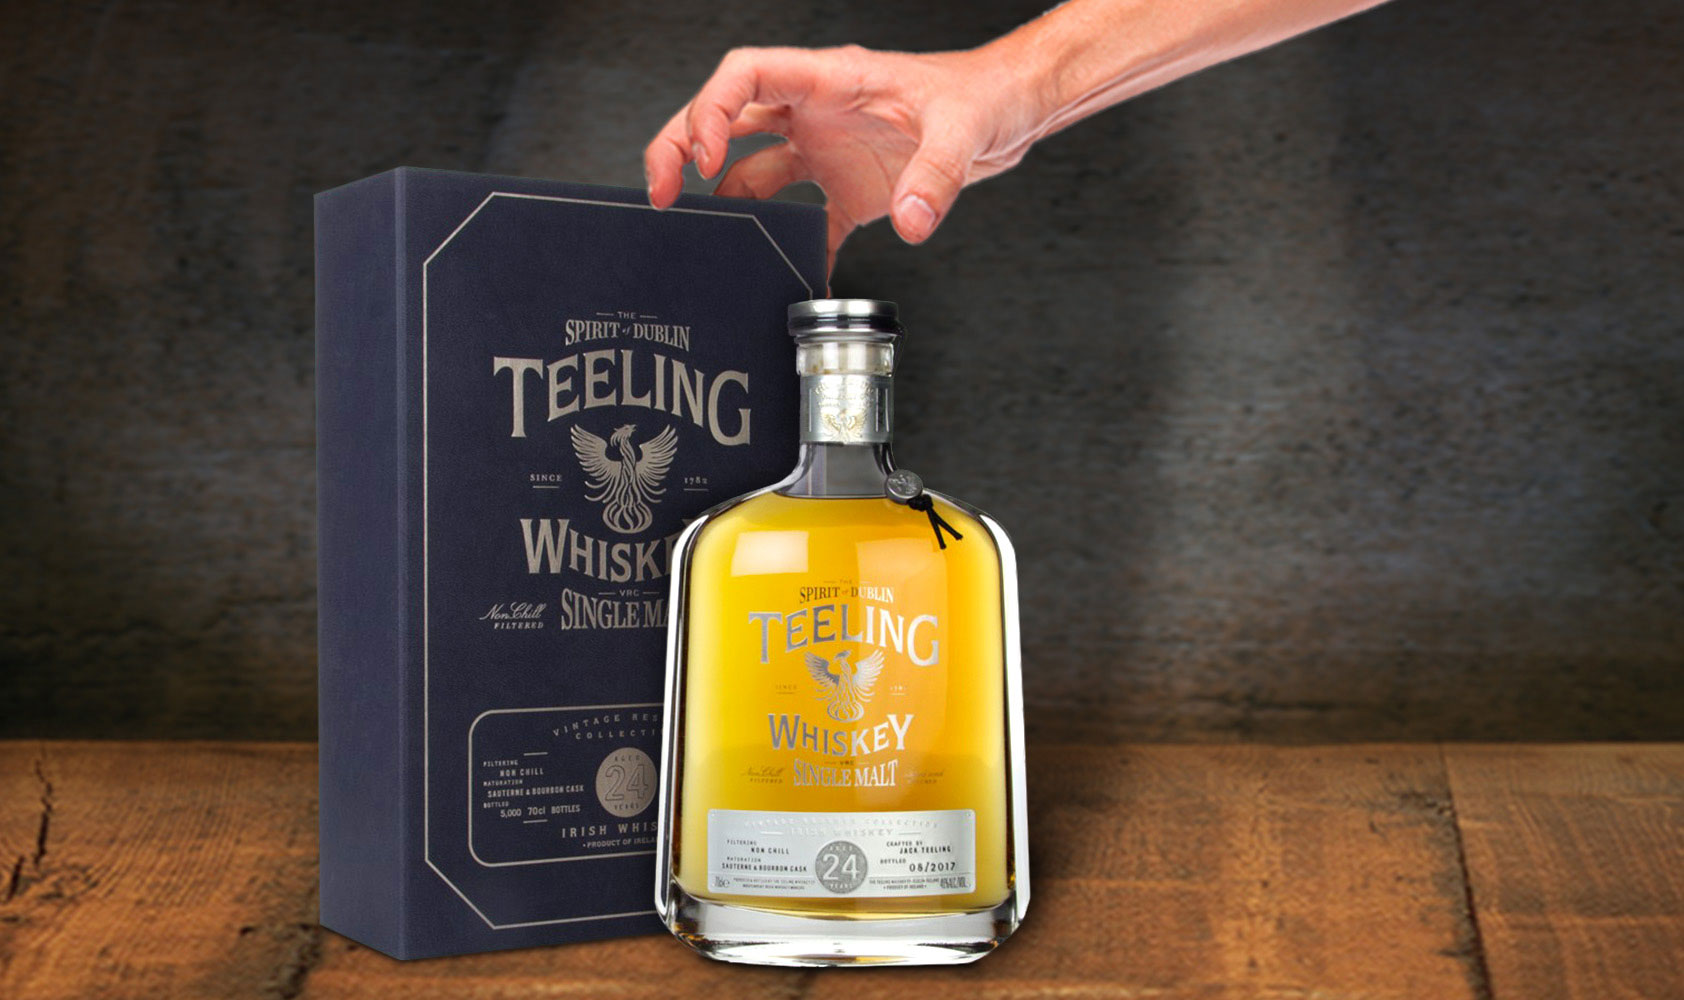 The winner of our Teeling #BagThisBottle competition is…